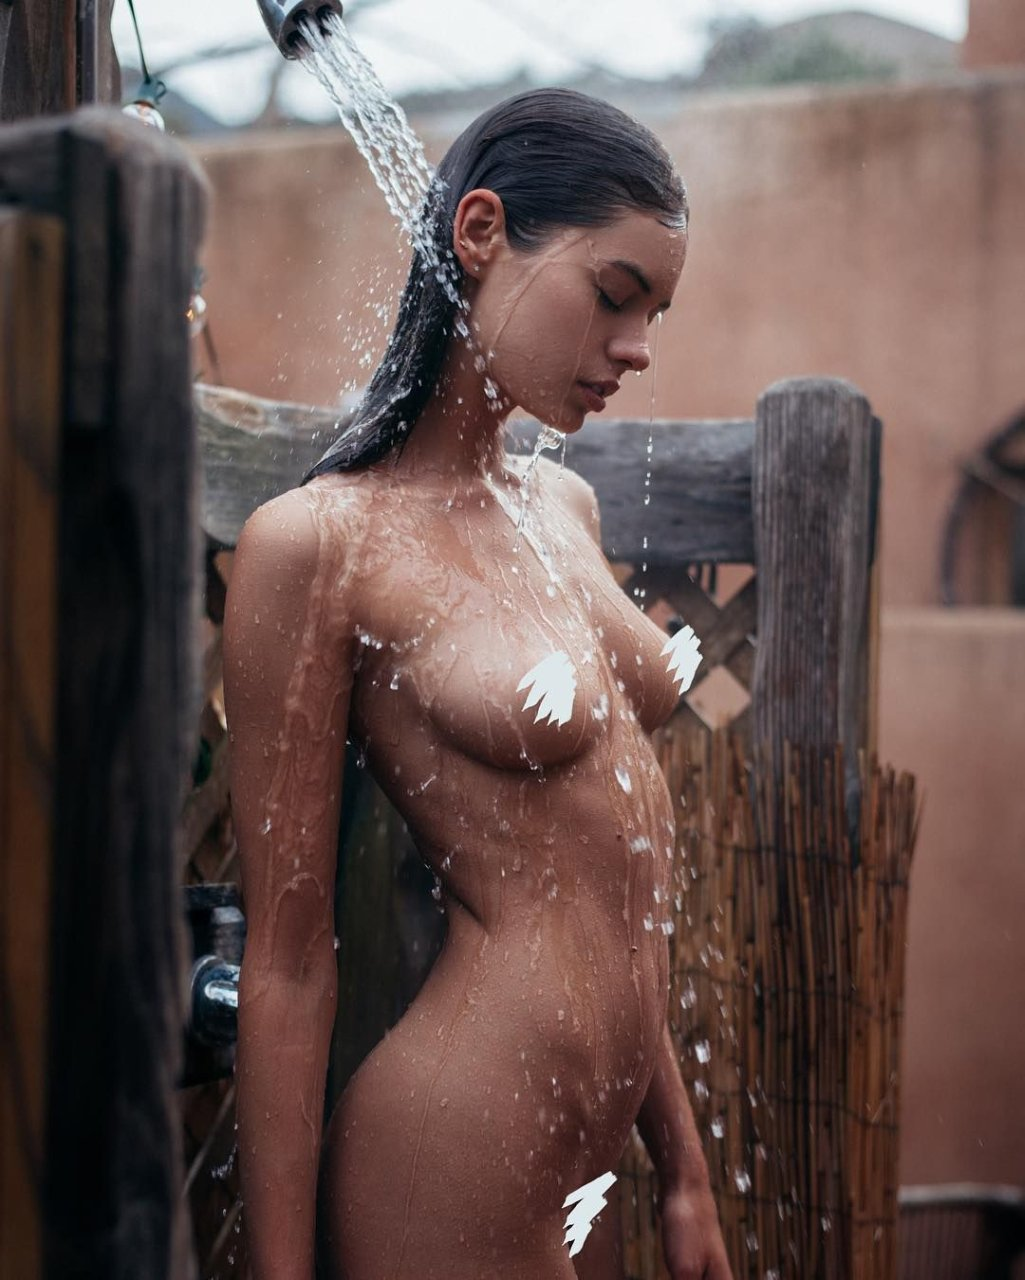 Discussion on this topic: Leaked celebs, beate-muska-topless-2-pics/